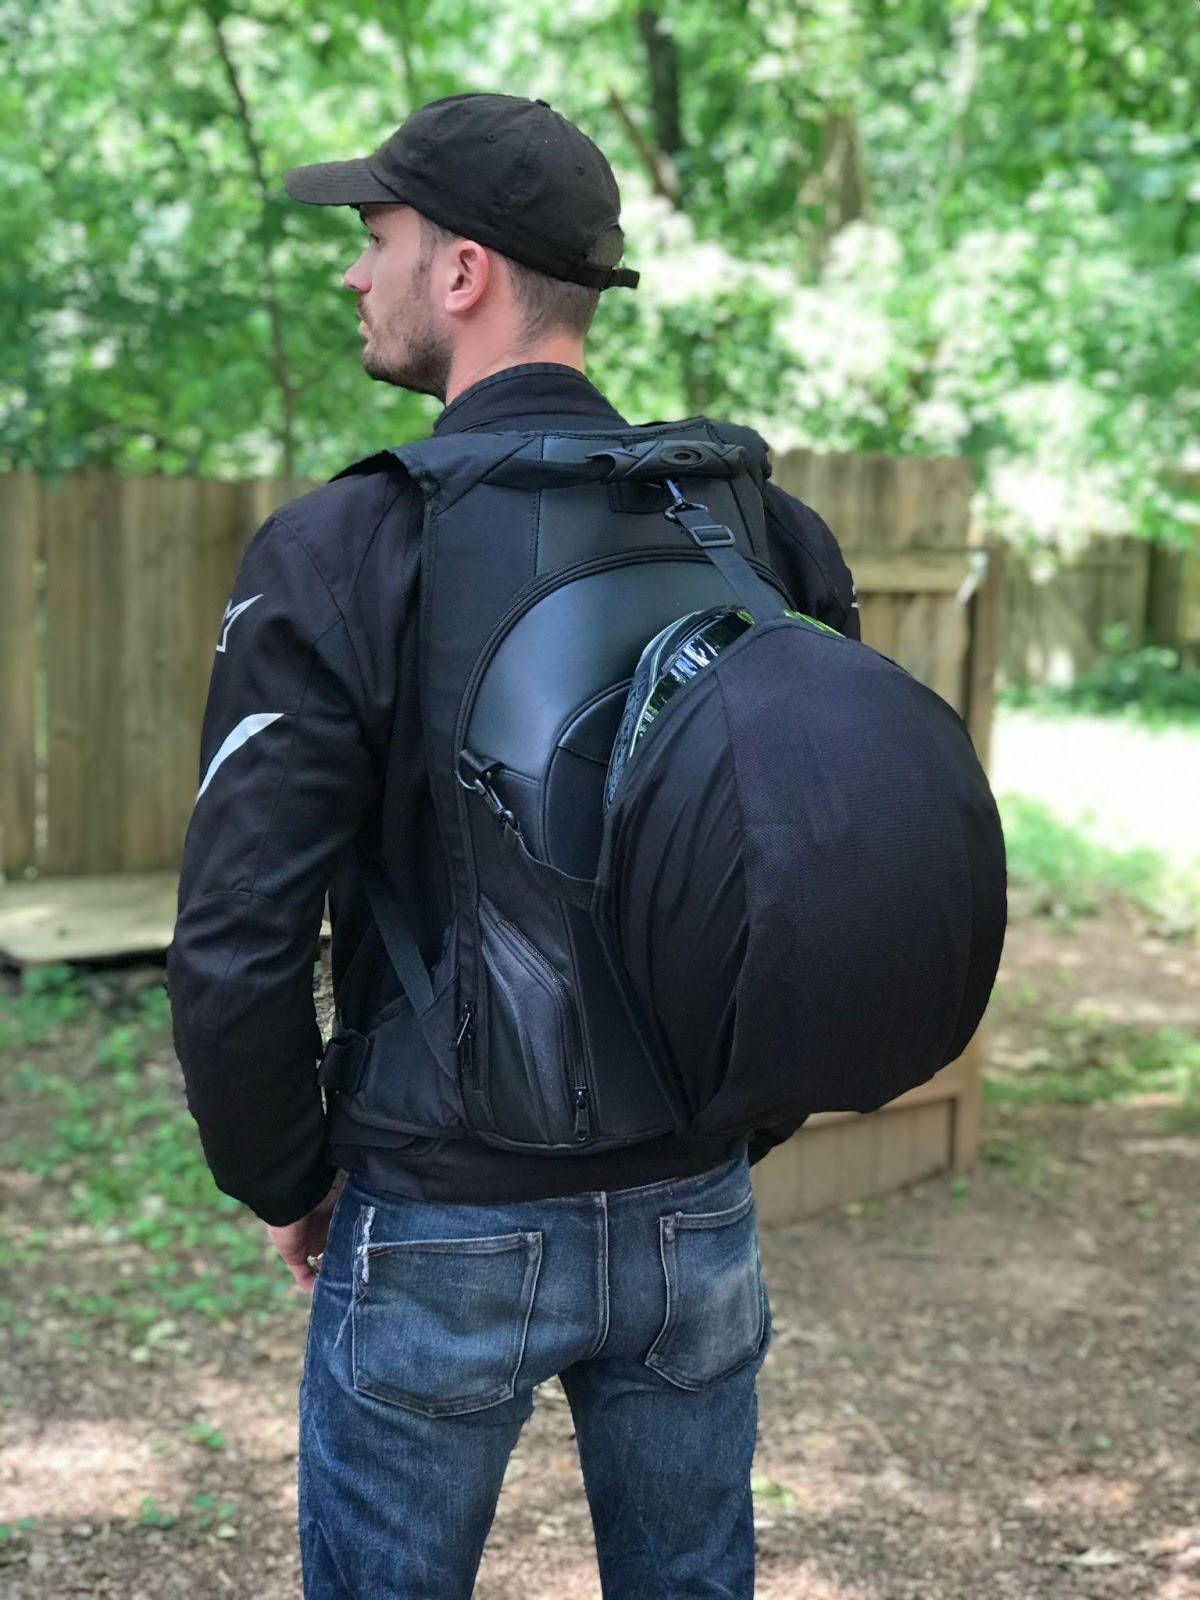 vikingbags axe motorcycle backpack exterior